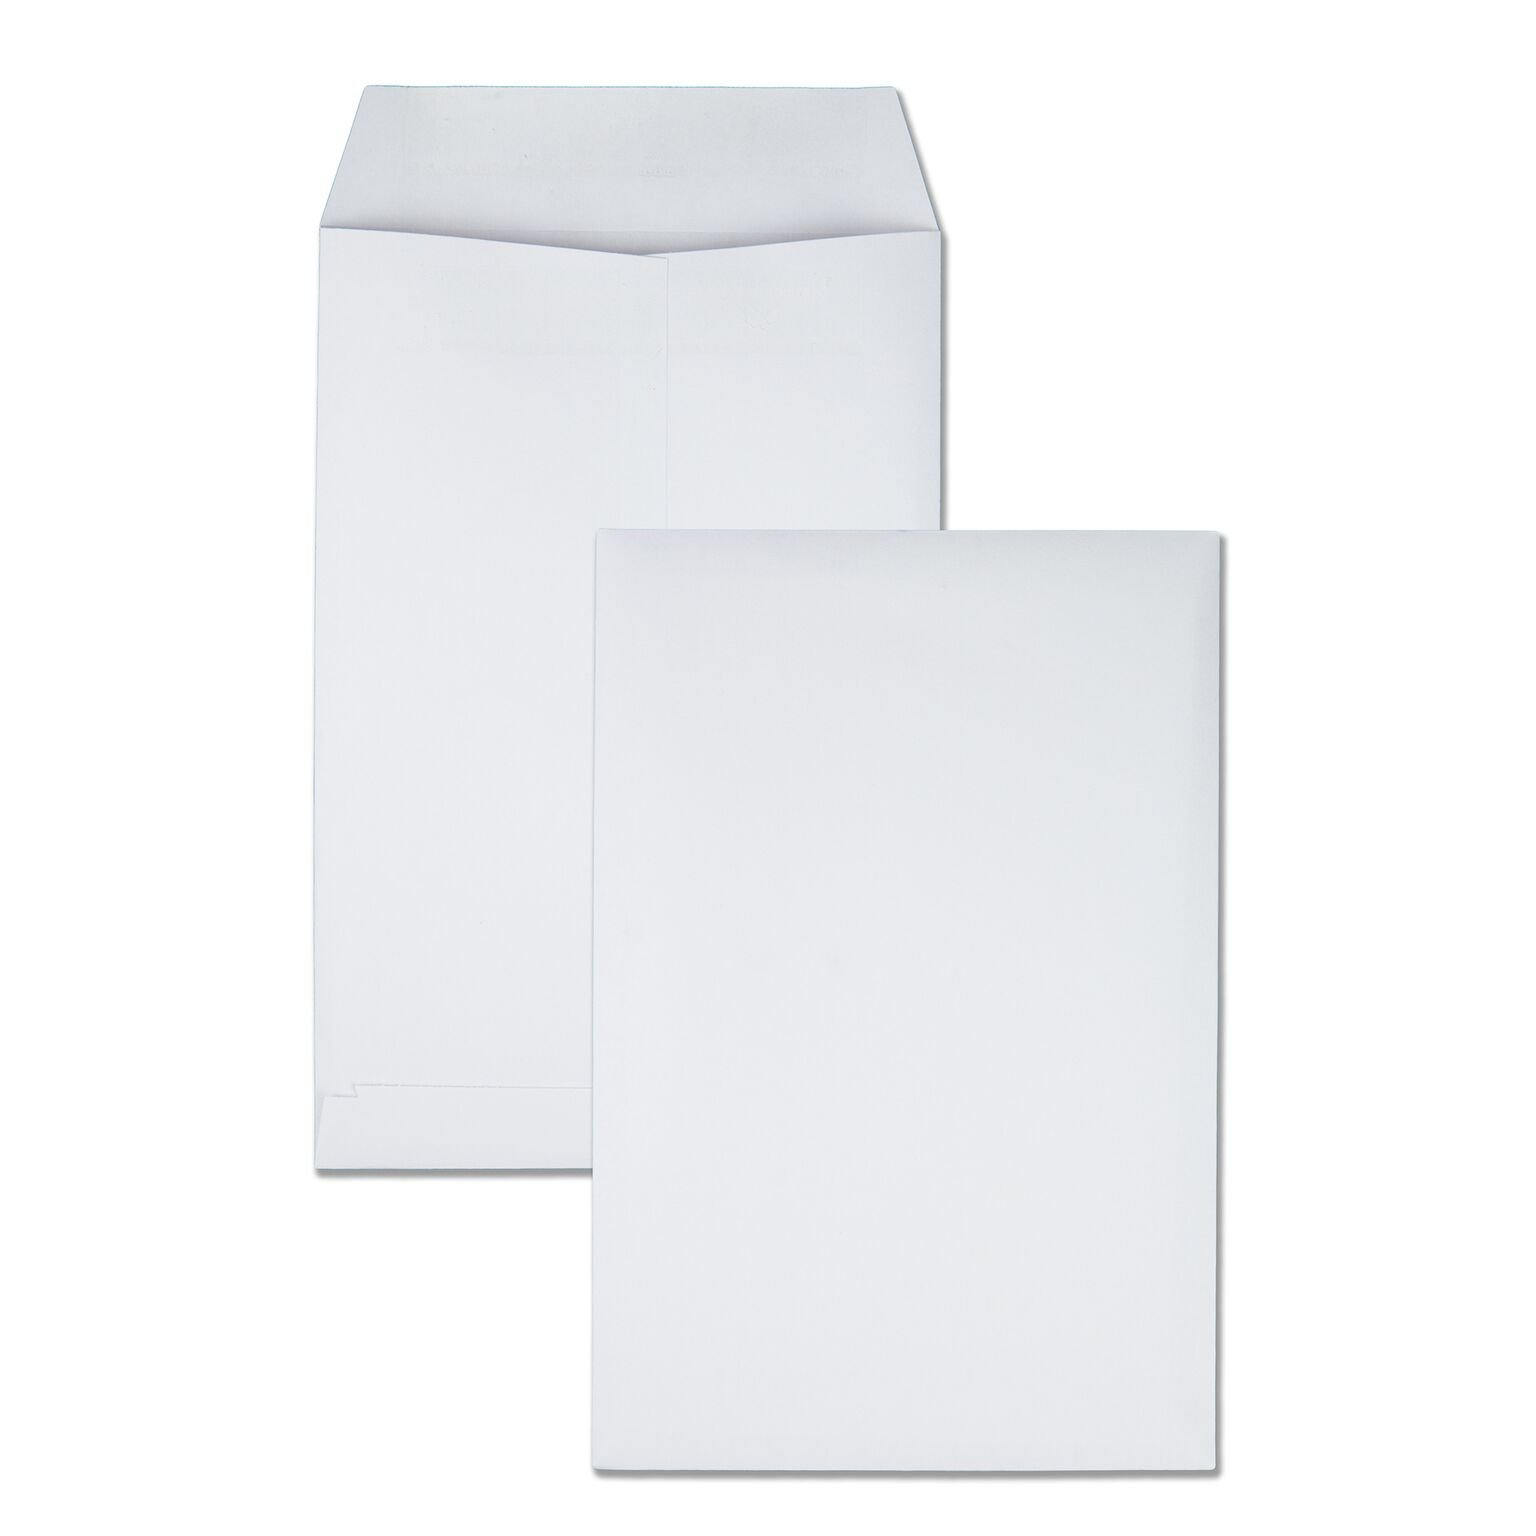 Quality Park 6 x 9 Catalog Envelopes with Self Seal Closure, 28 lb White, Great Option for Mailing, Storage and Organizing, 100 per Box (43117)